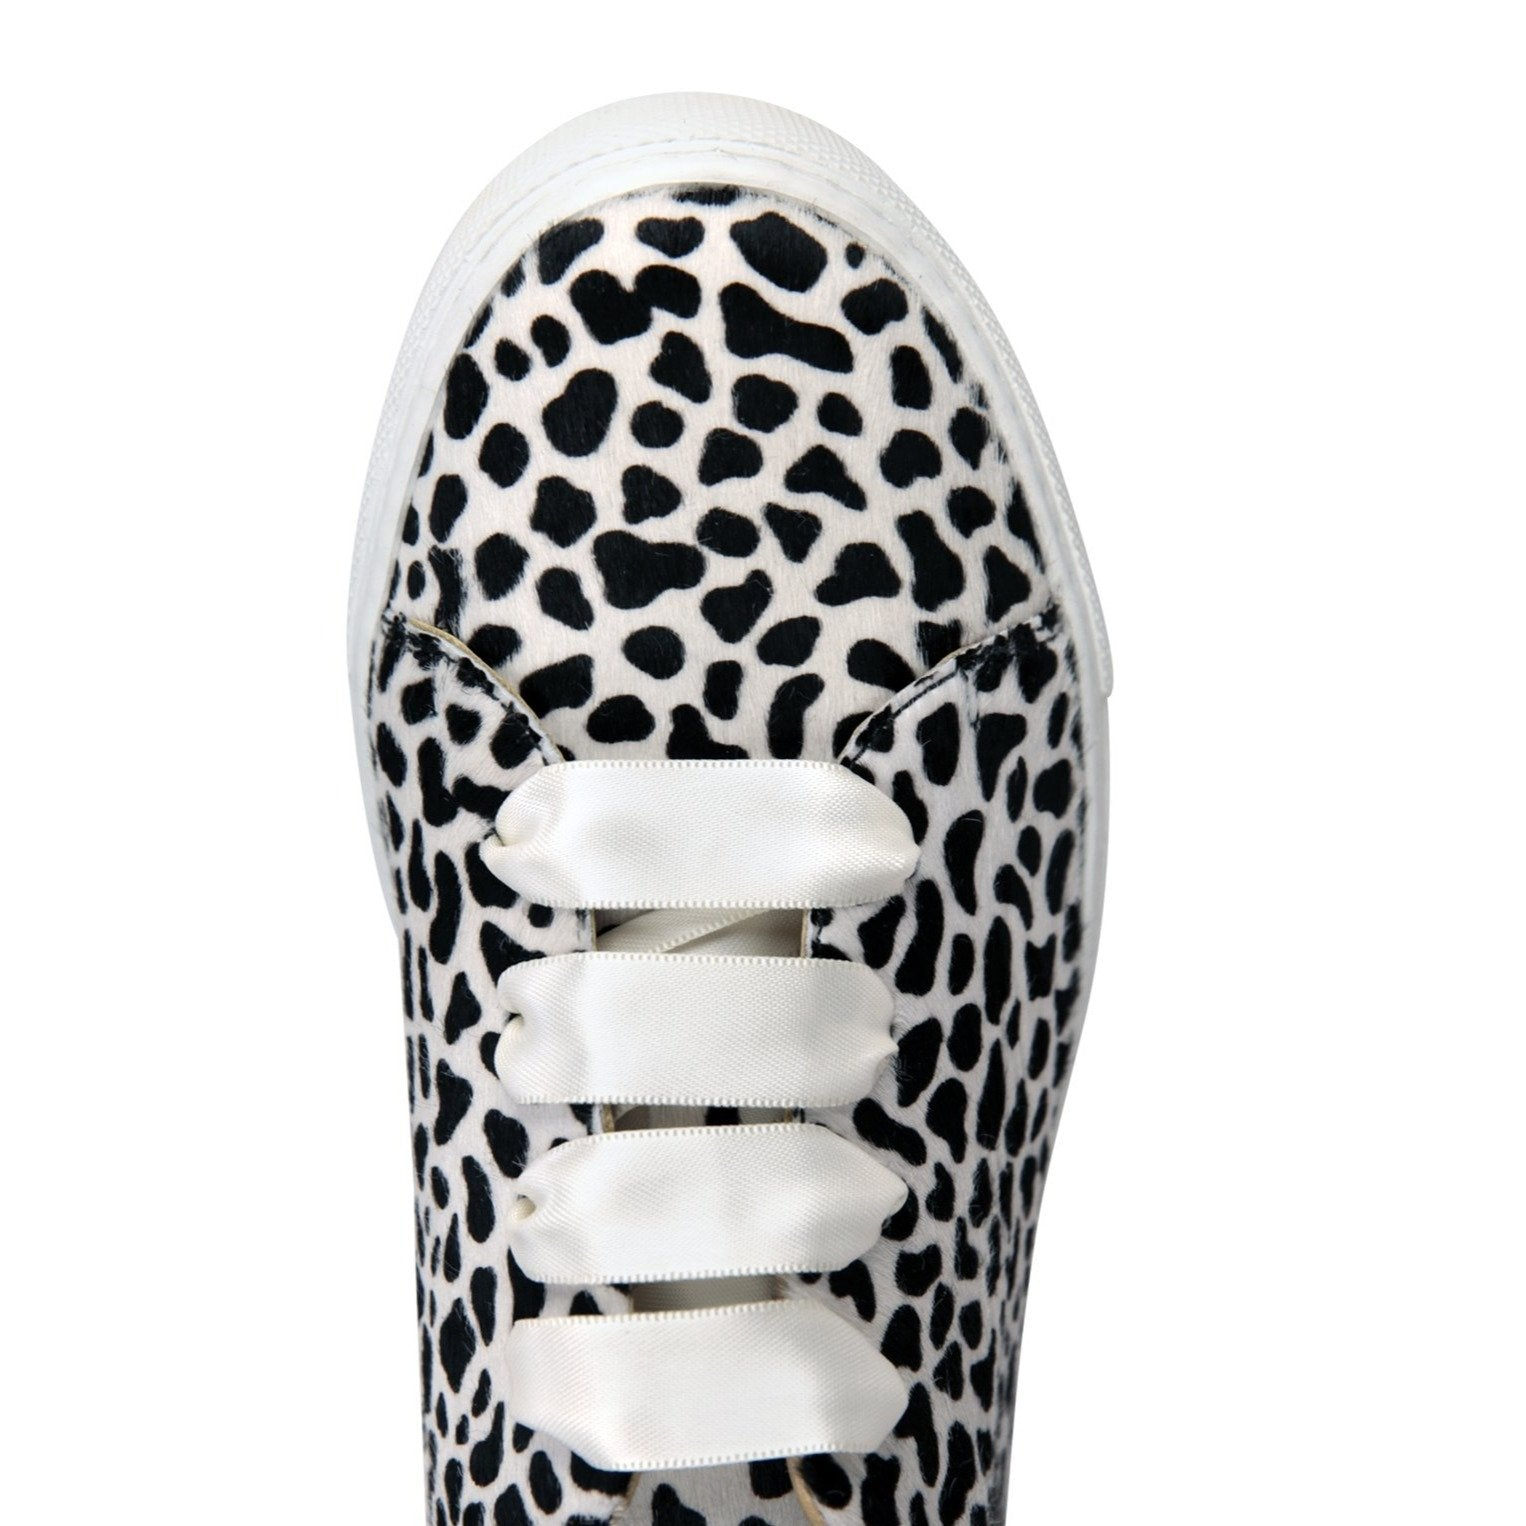 GROSSETO - Calf Hair Dalmation, VIAJIYU - Women's Hand Made Sustainable Luxury Shoes. Made in Italy. Made to Order.